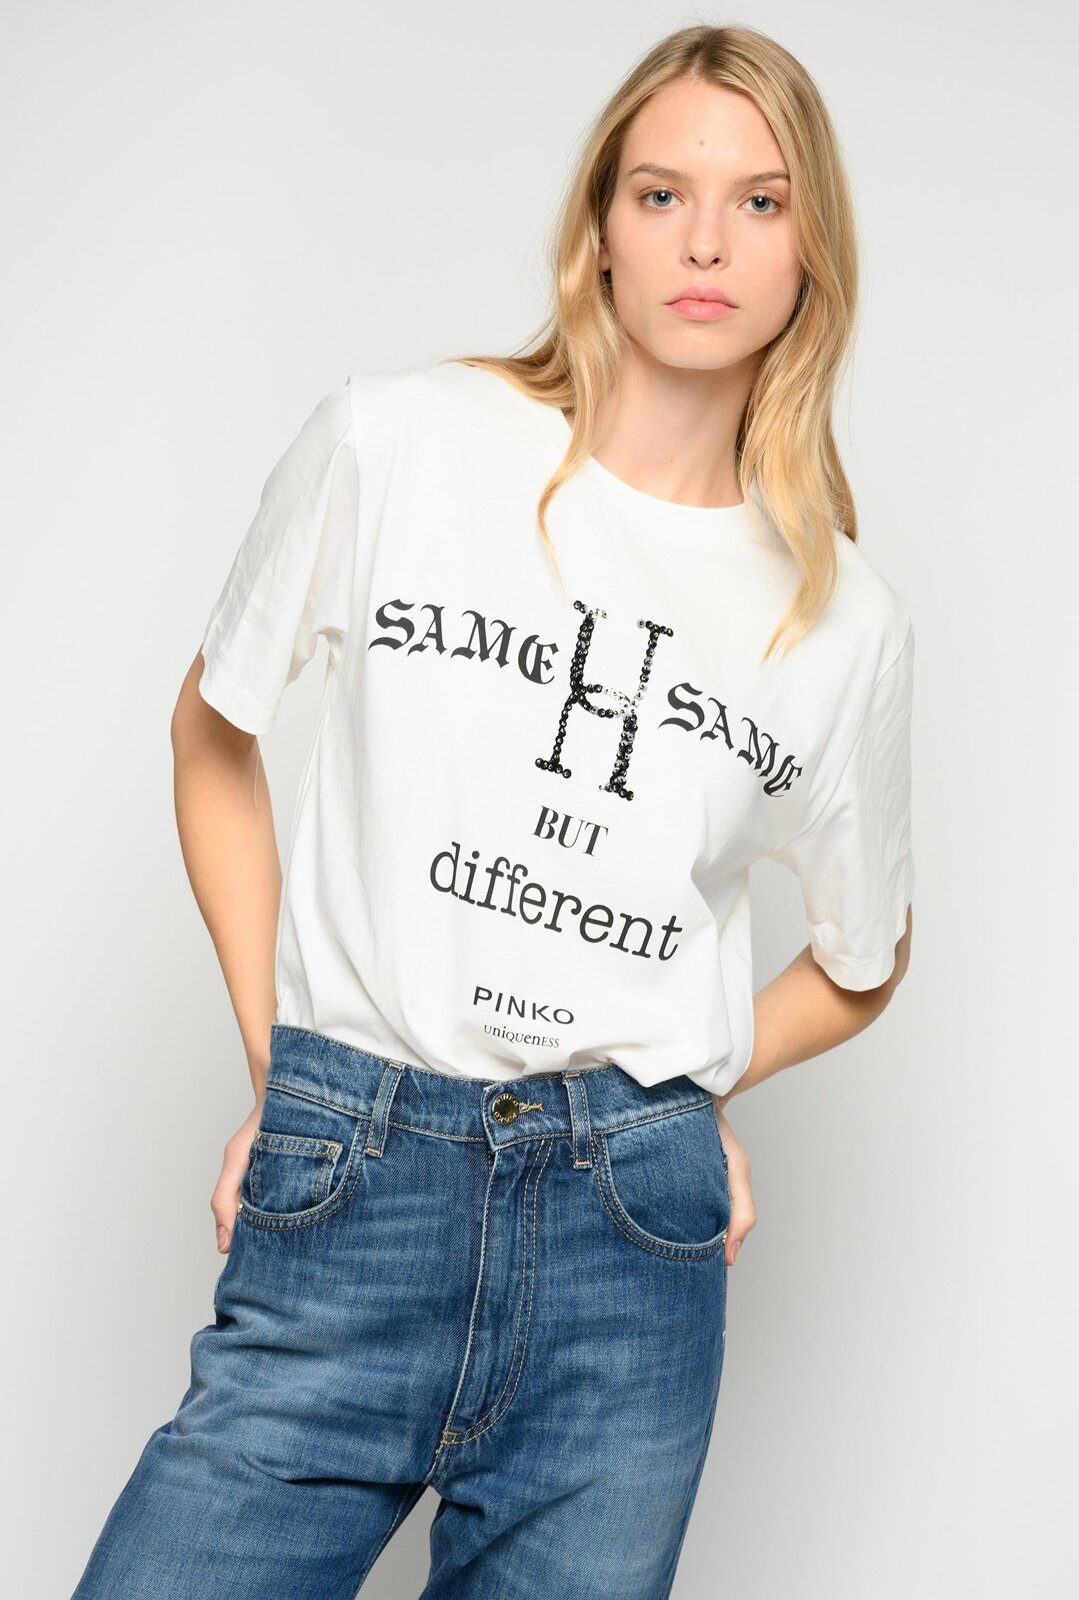 T-Shirt Same Same But Different - Pinko